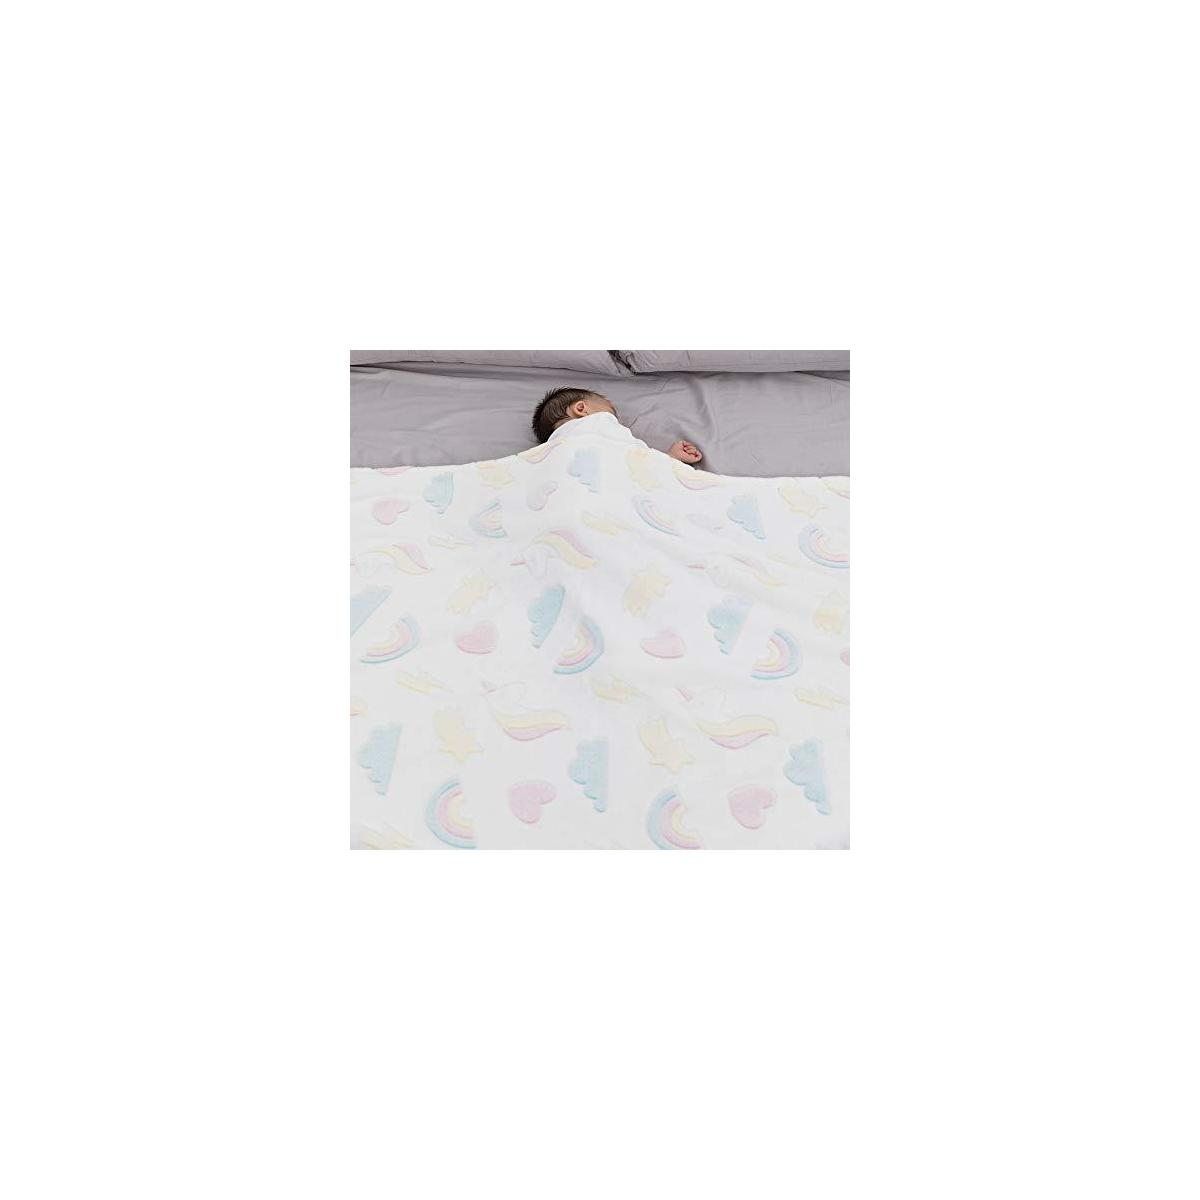 Unicorn Glow in The Dark Throw Blanket - Soft Flannel Cartoon Blanket for Kids and Adults, Decorative Luminous Throw for Bed Sofa Couch Car, 50x60 Inches, Cream